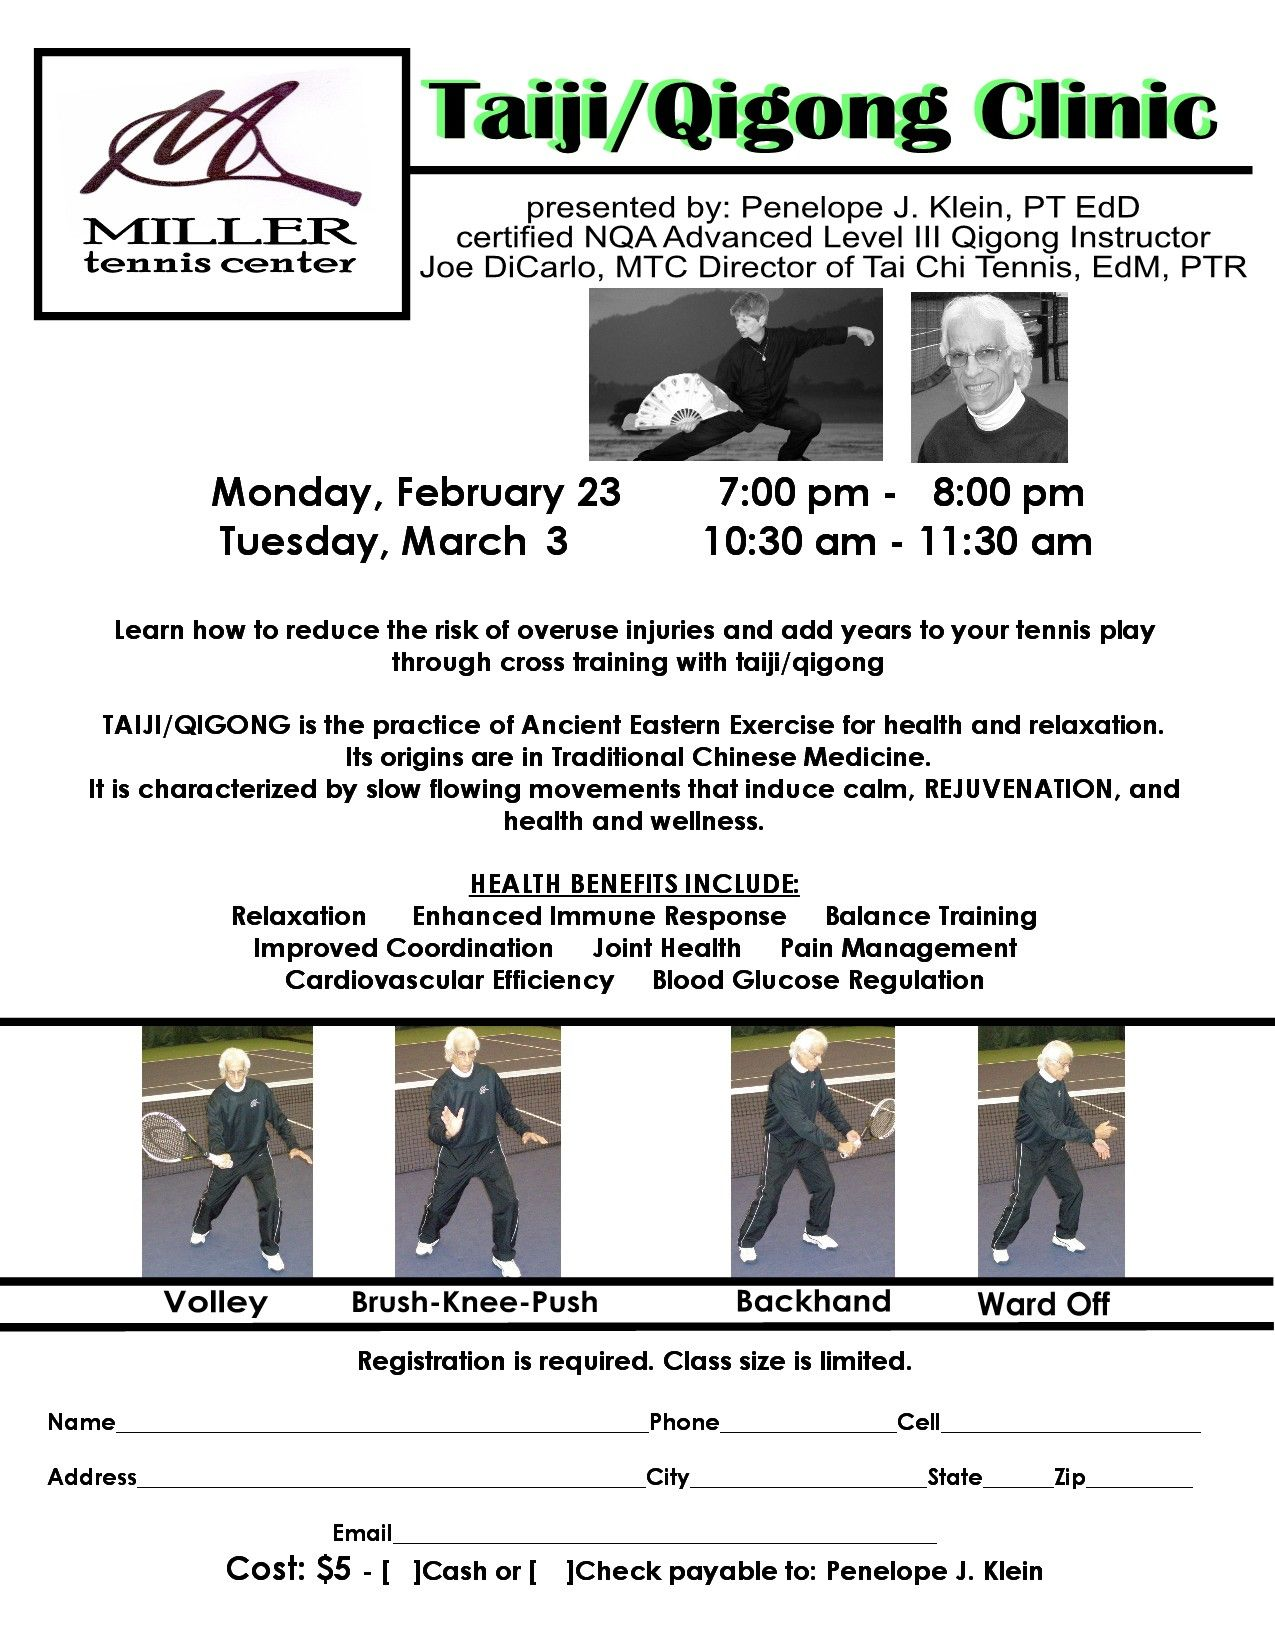 Taiji/Qigong Clinic presented at Miller Tennis Center